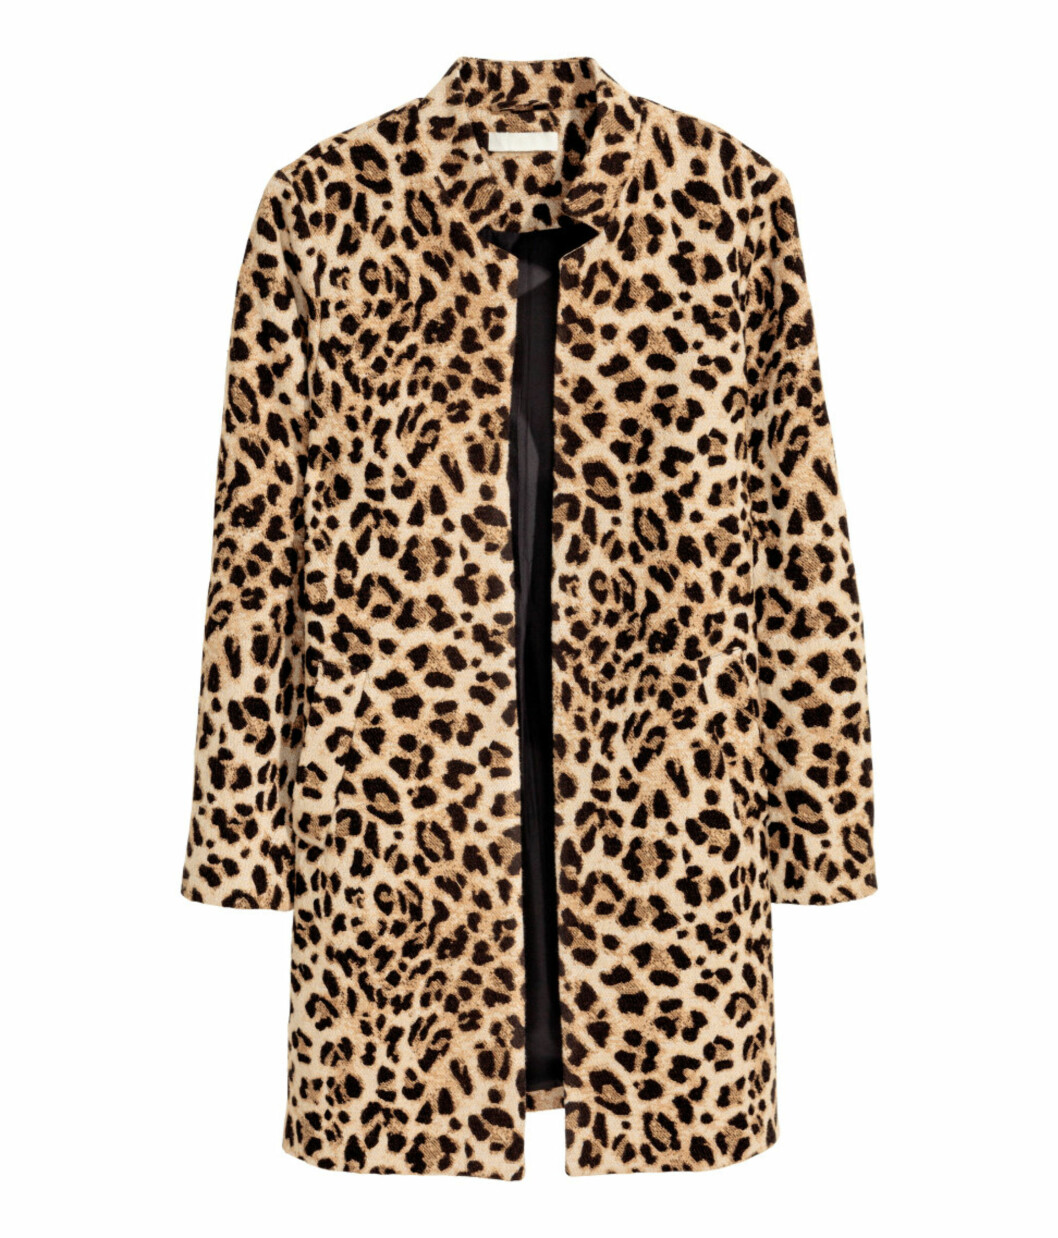 <strong>Kåpe fra H&M | kr 699 | http:</strong>//www.hm.com/no/product/65613?article=65613-A